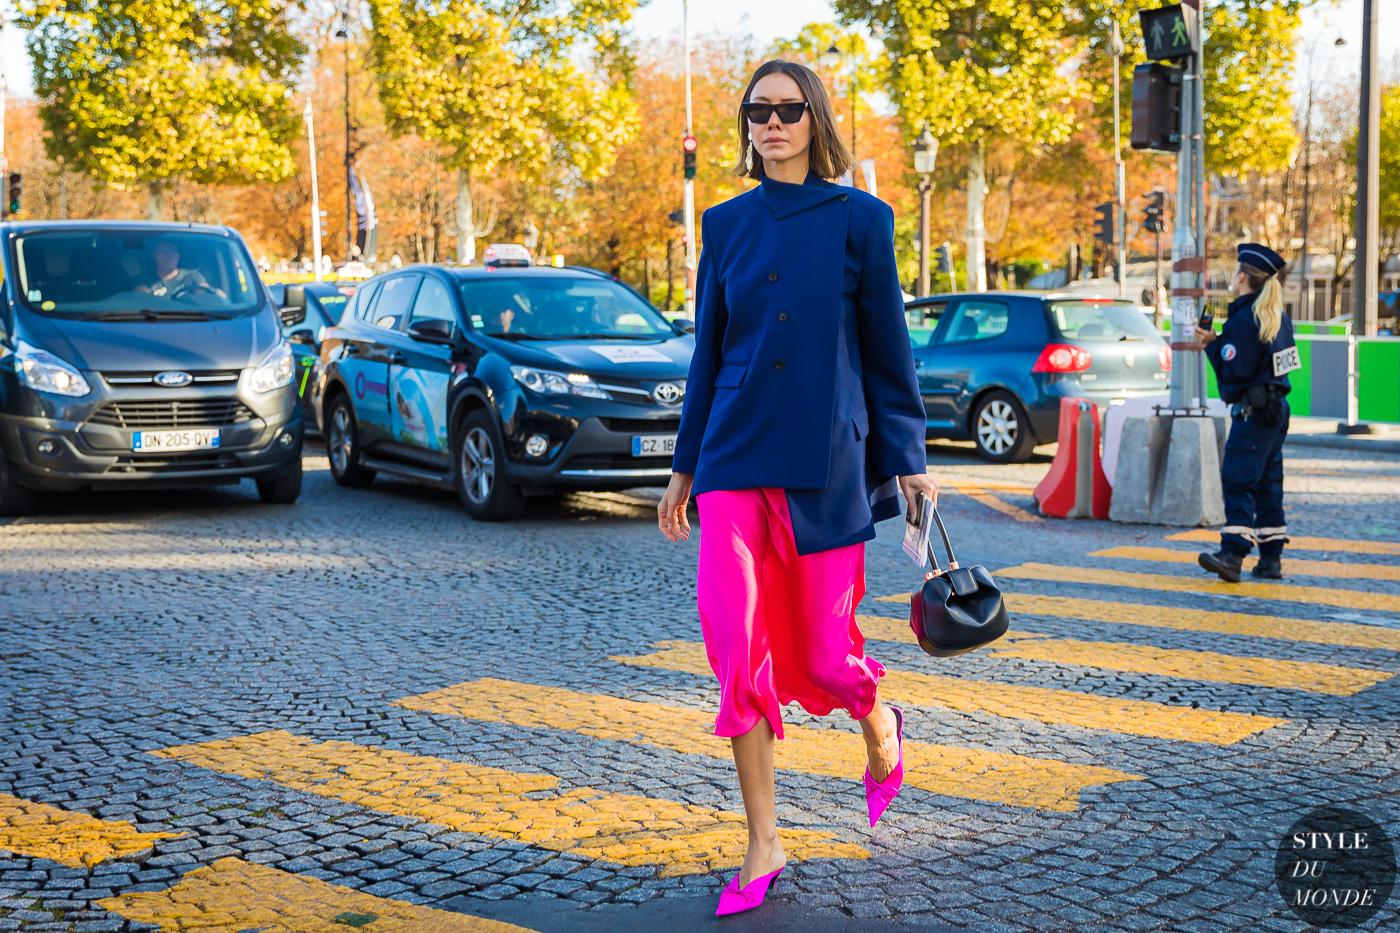 Julie Pelipas by STYLEDUMONDE Street Style Fashion Photography_48A2719